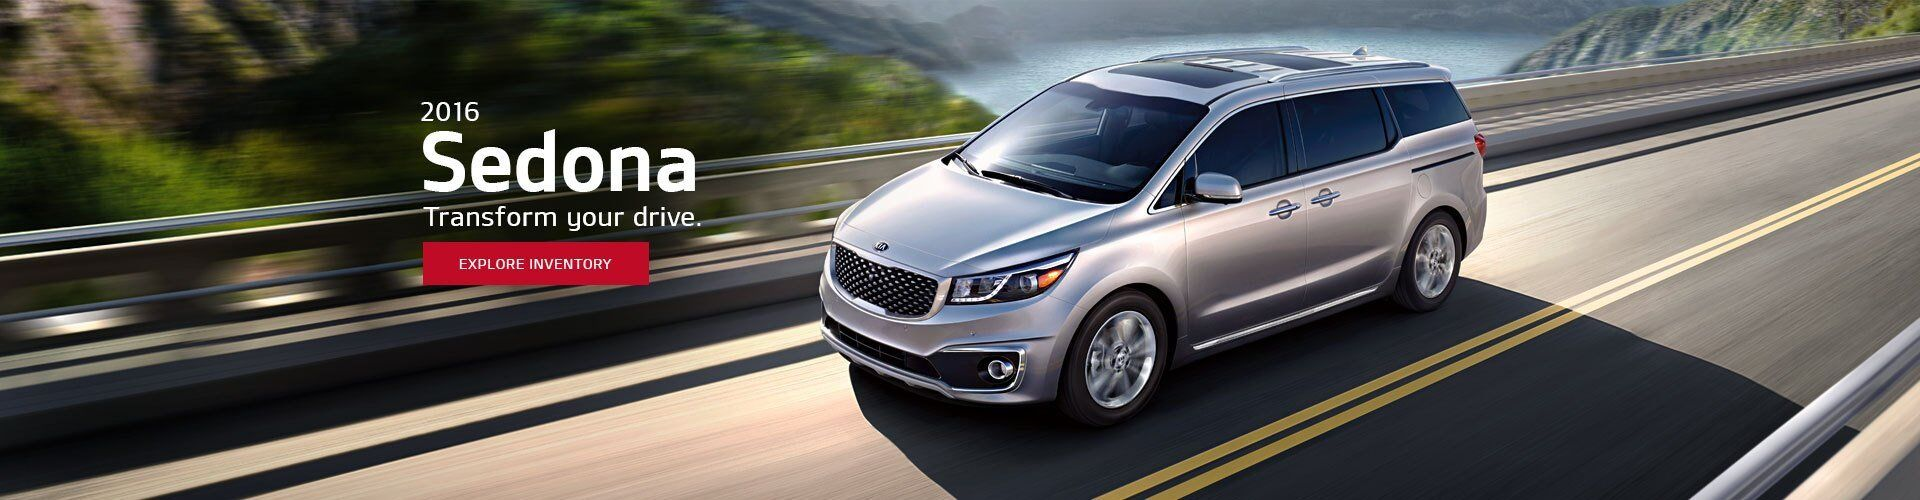 New Kia Sedona at Kia of Auburn